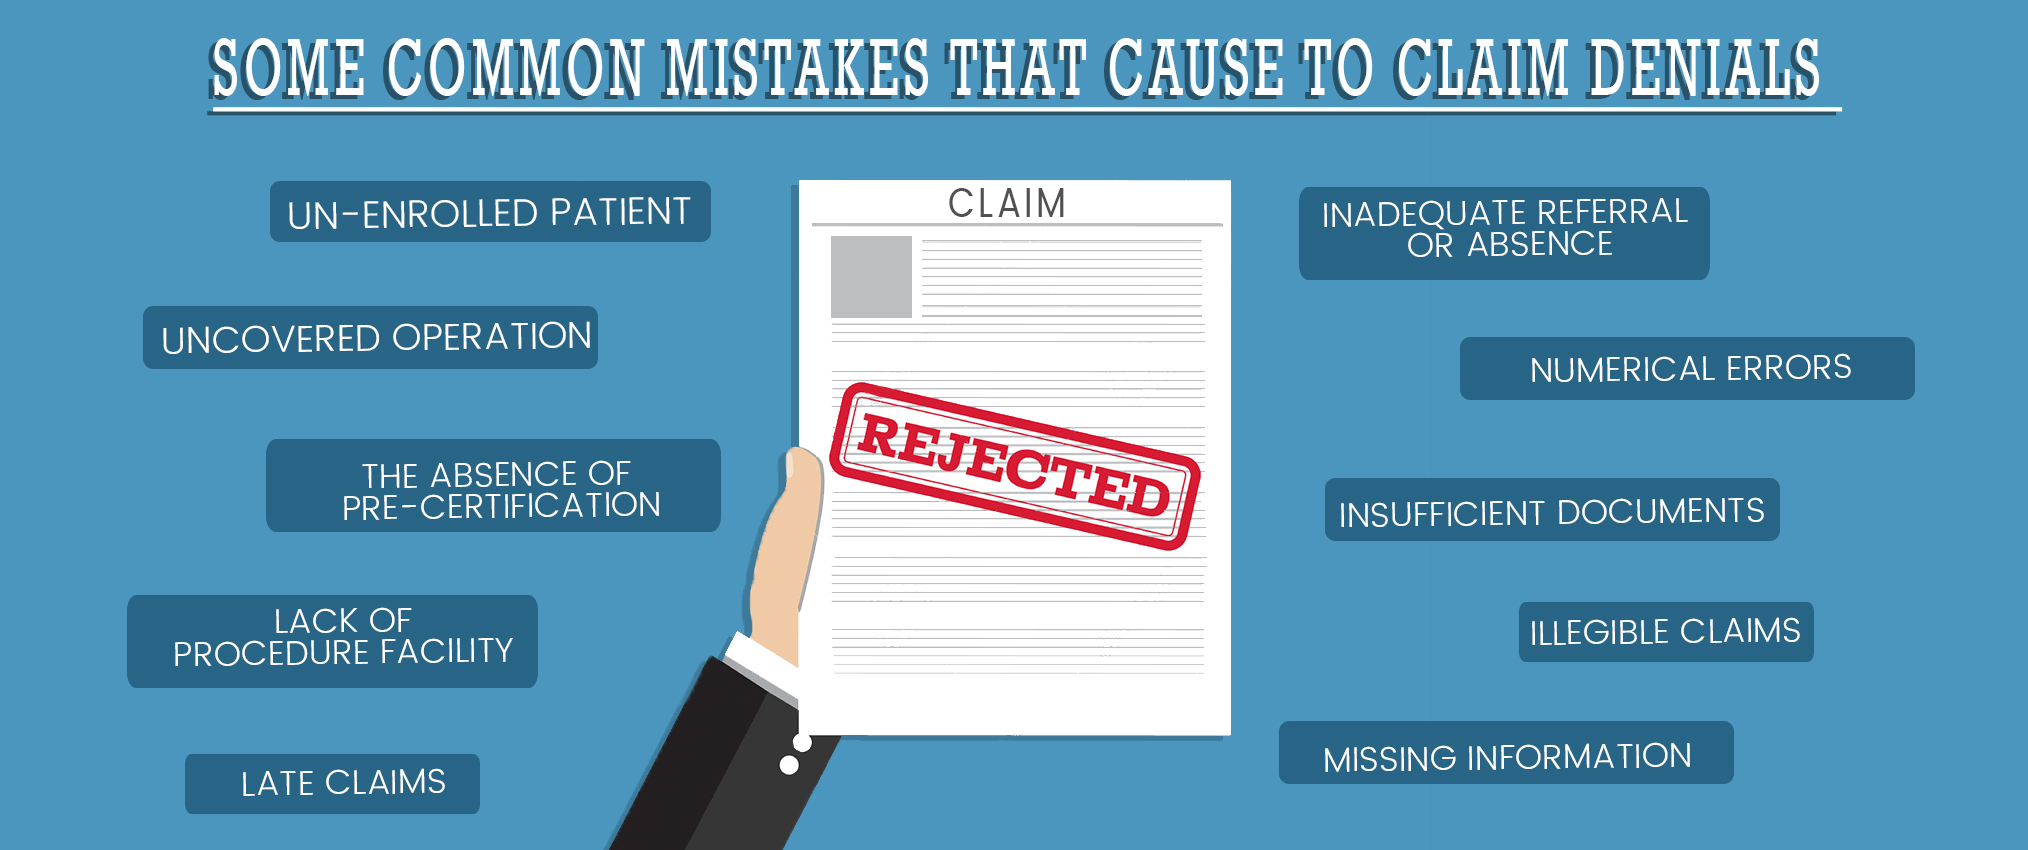 some-common-mistakes-that-cause-to-claim-denials